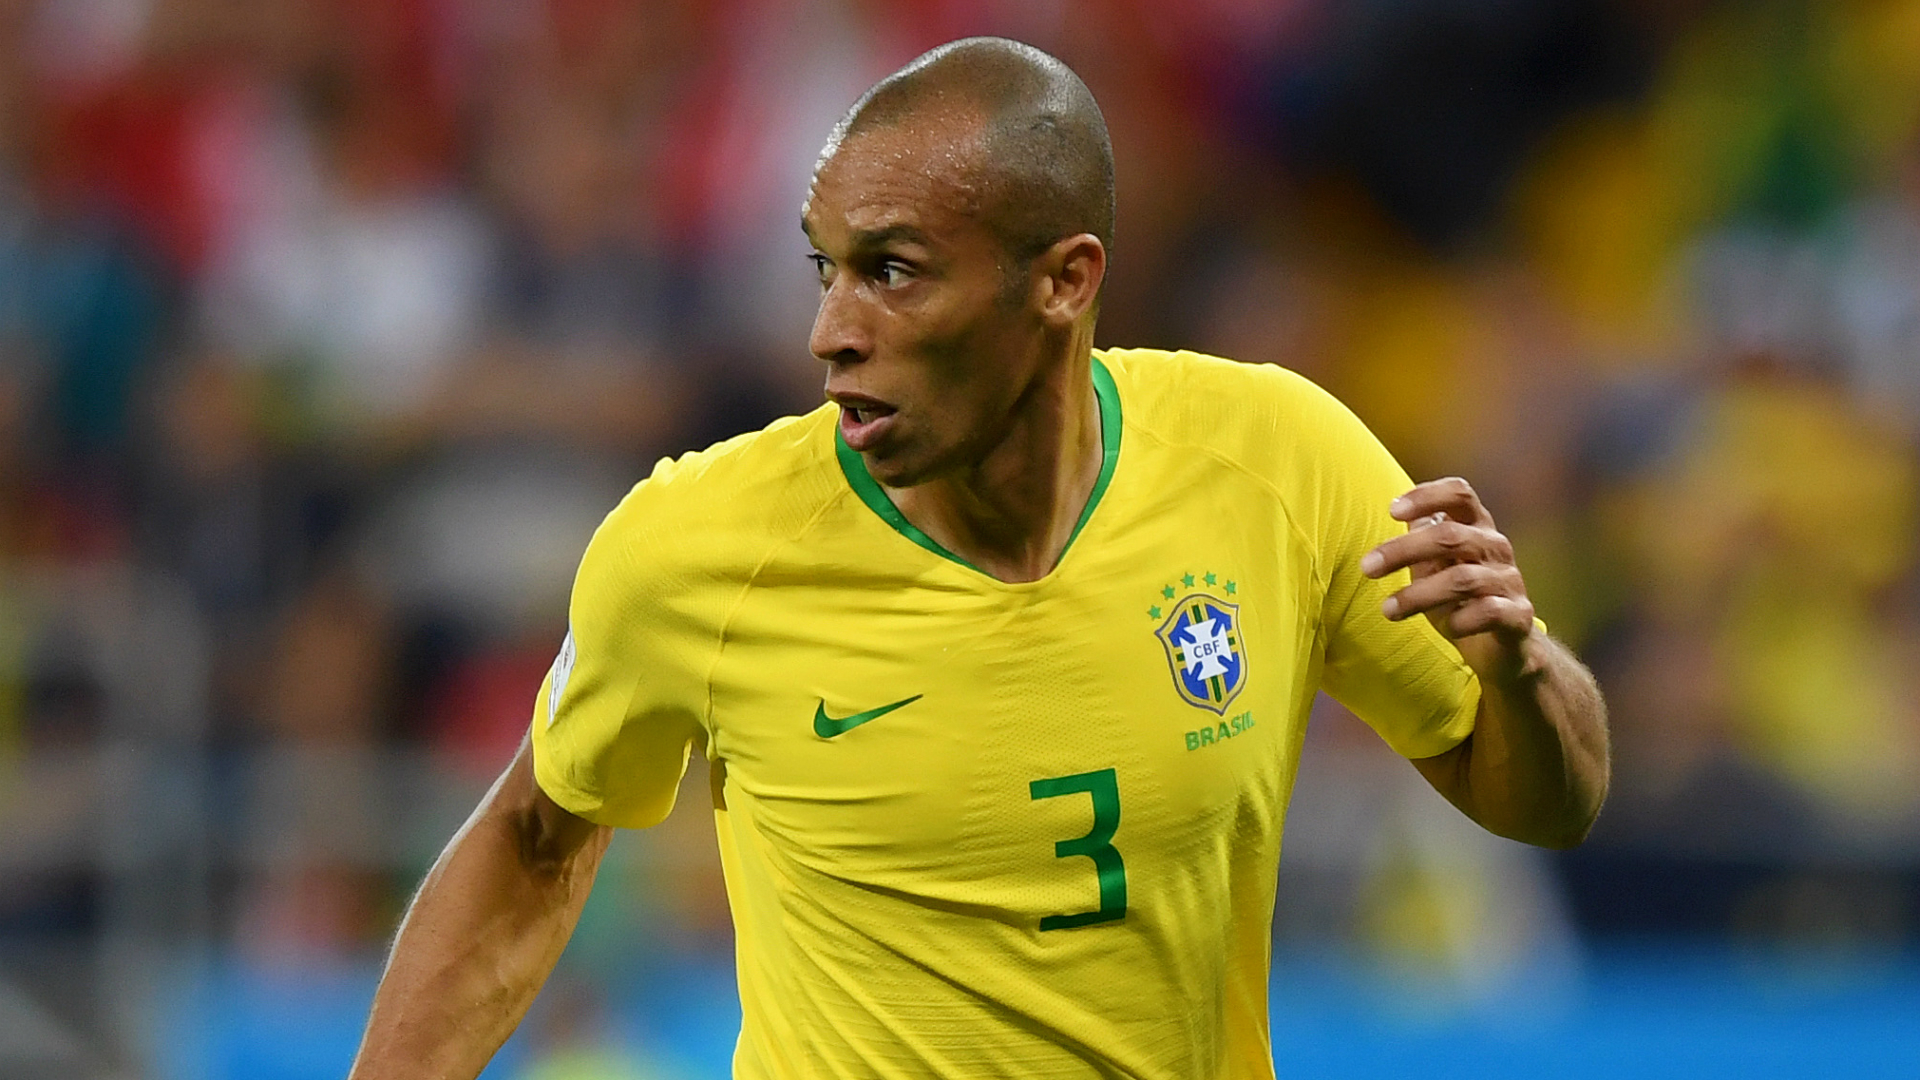 Brazil defeat Argentina 1-0 in friendly encounter